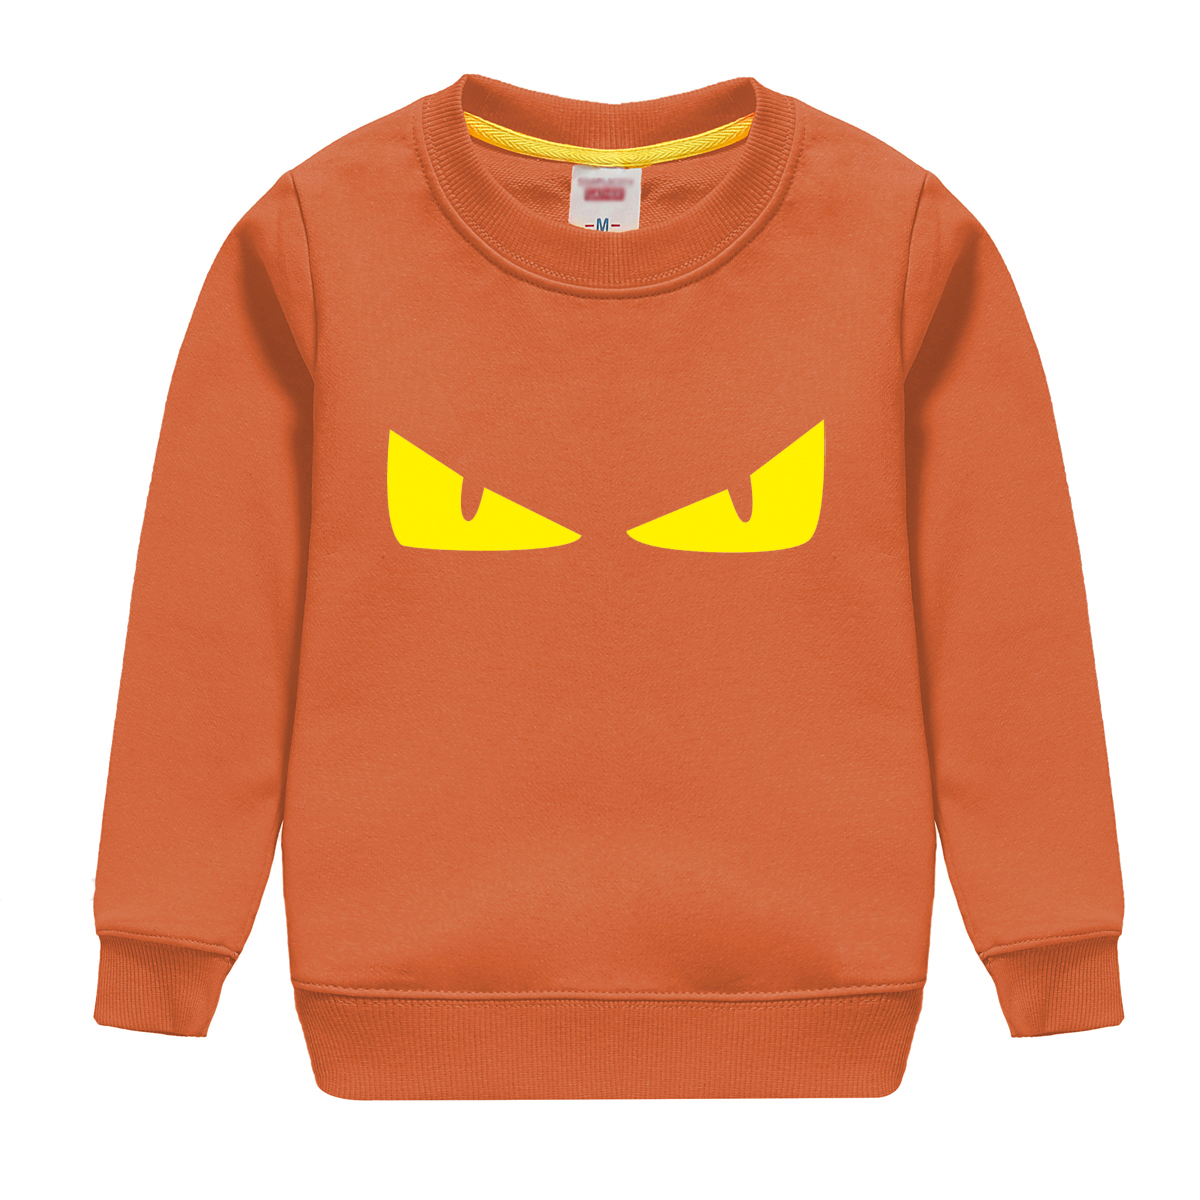 new Dead Pool pattern 2018fashion long sleeve o-neck sweatshirt X-MAN top soft pullover baby boy clothing design for 4-13 t